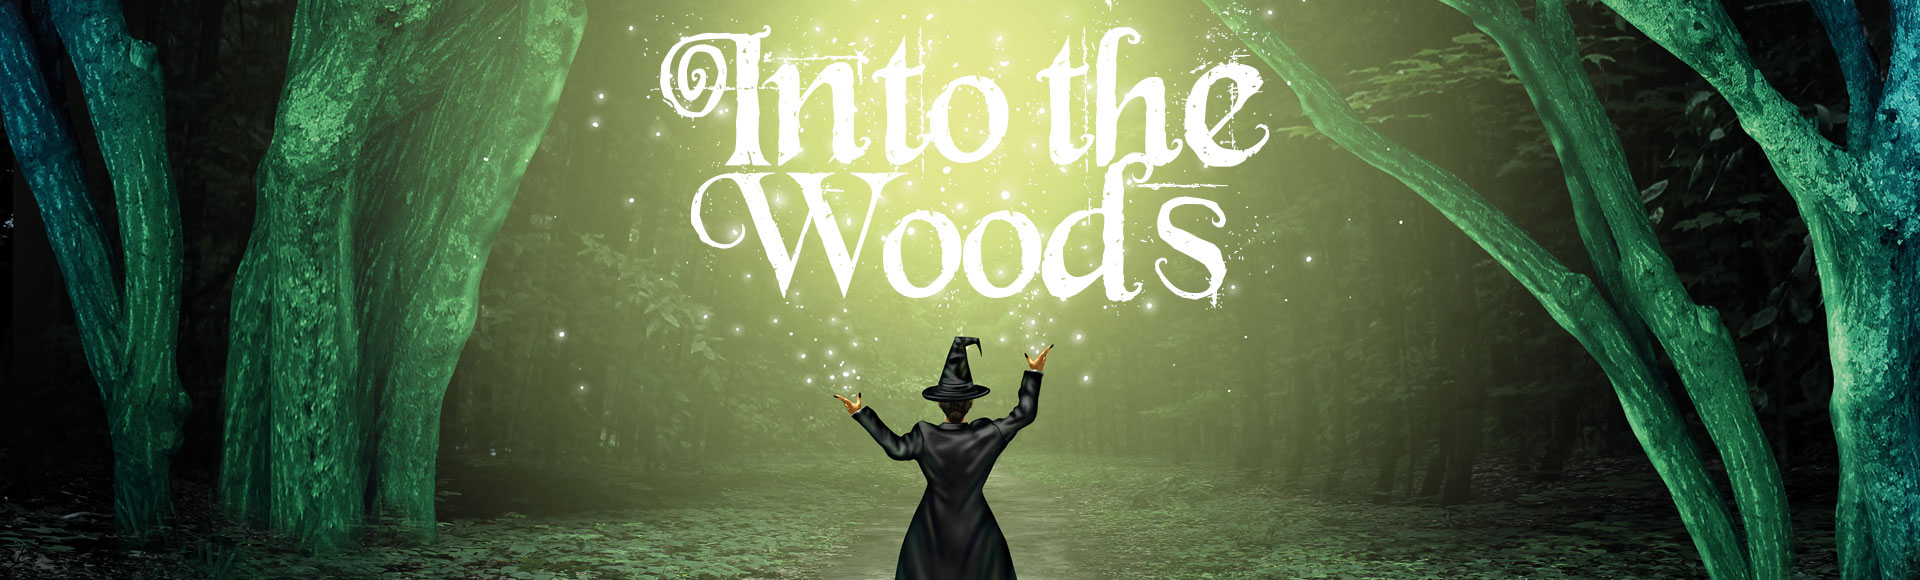 Into the Woods, Sommerfestspiele 2020 Brunn am Gebirge